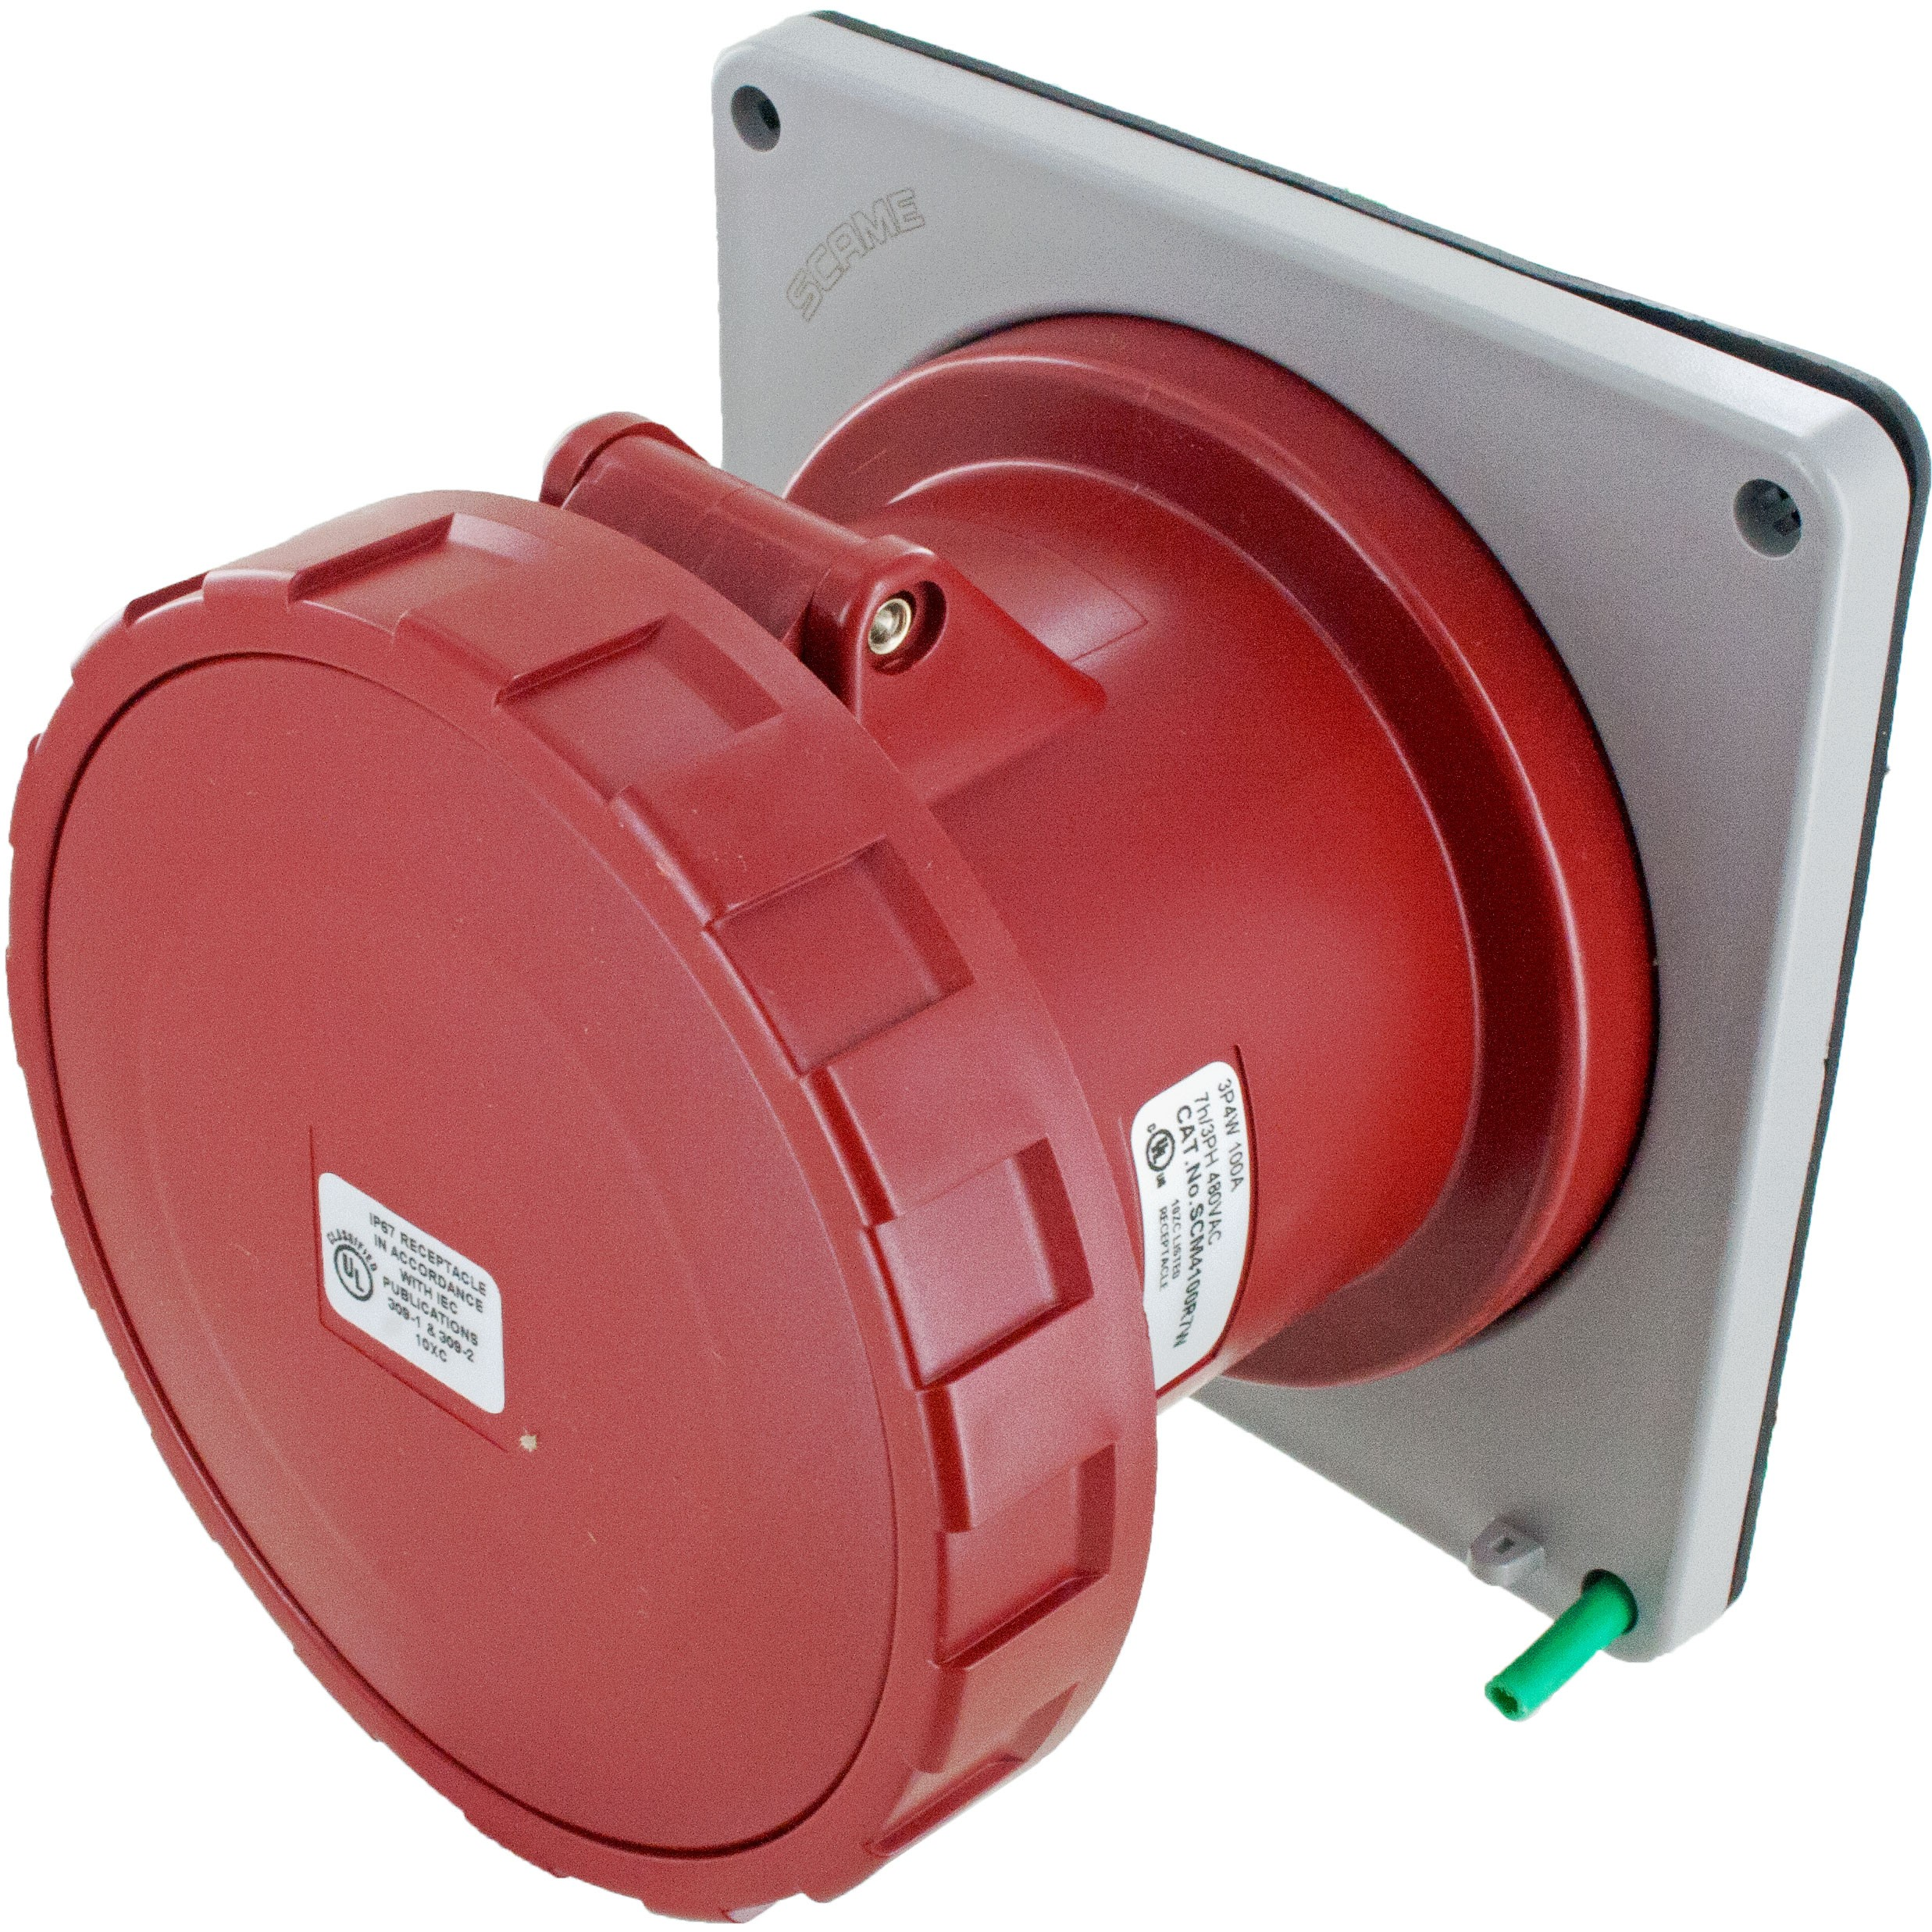 4100R7W Pin And Sleeve Receptacle 100 Amp 3 Pole 4 Wire